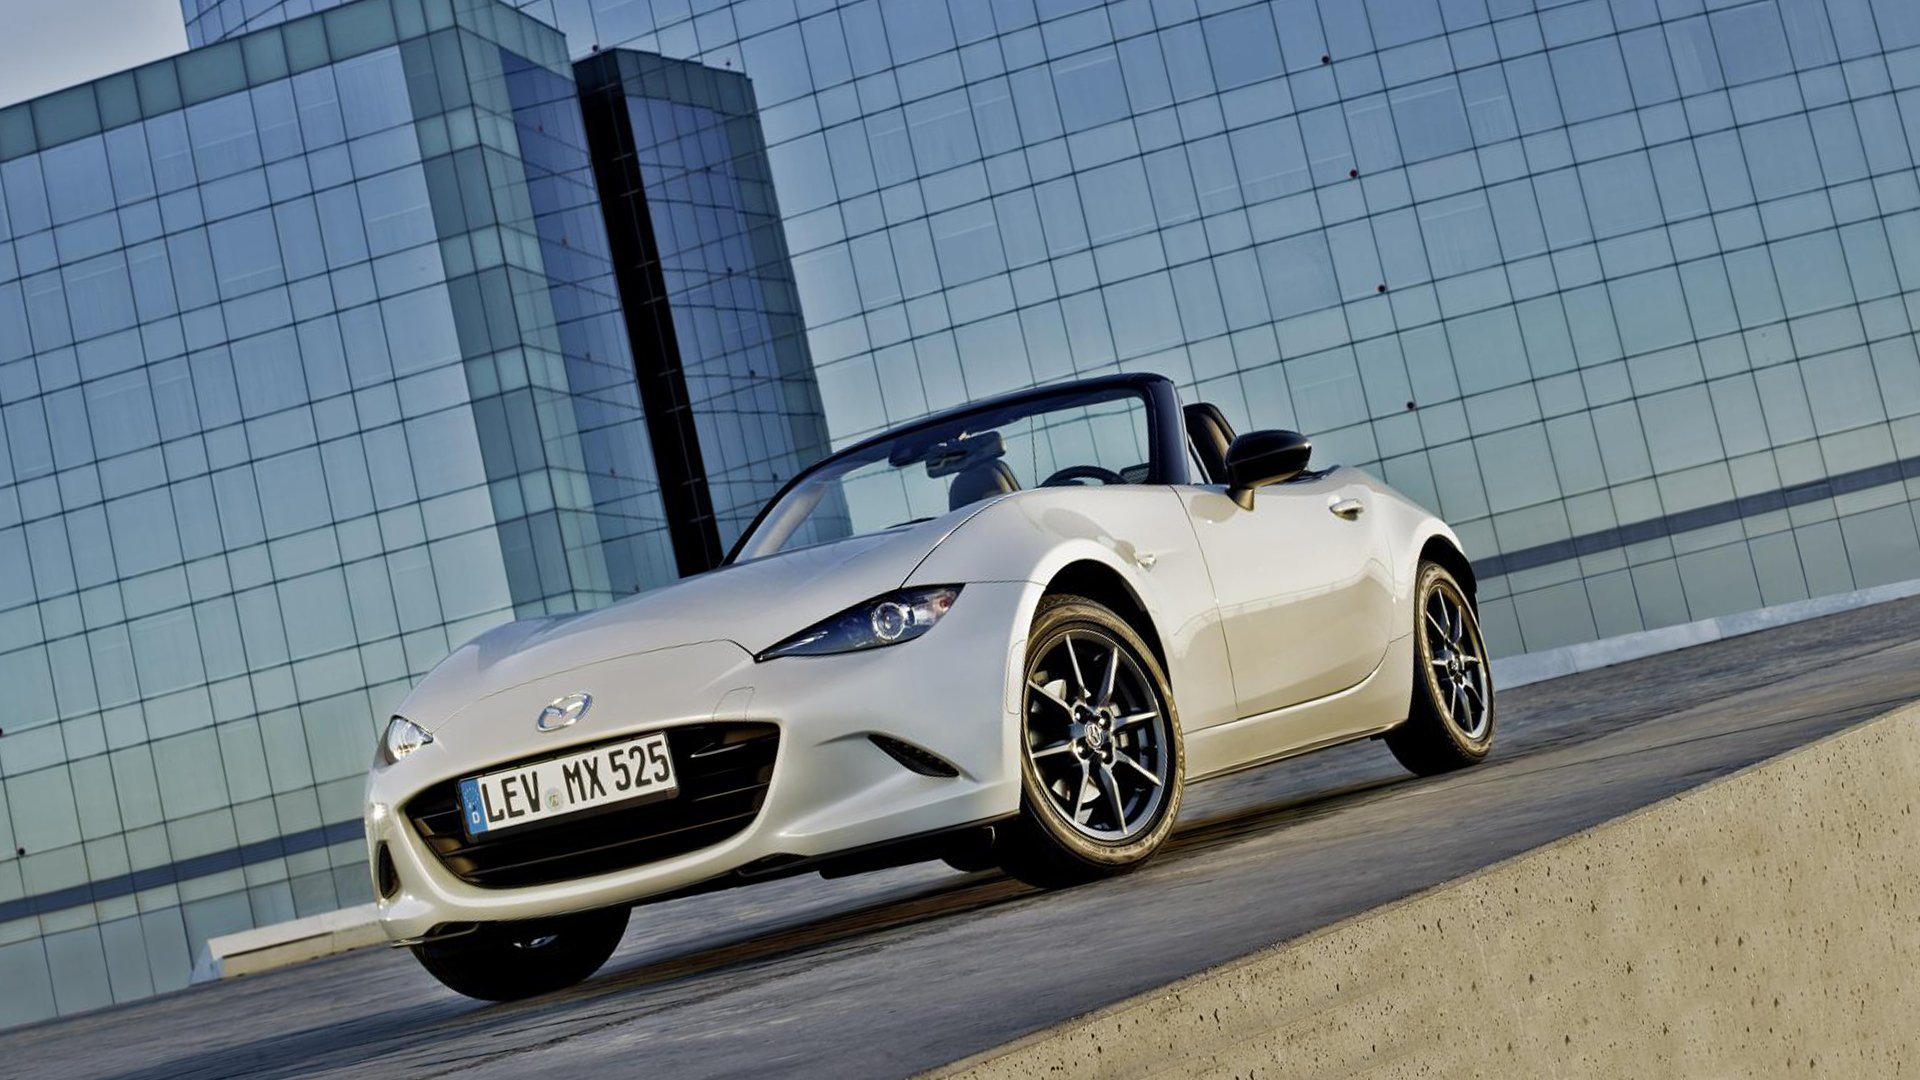 Sport Hybryd Turbo Mazda MX-5 HD